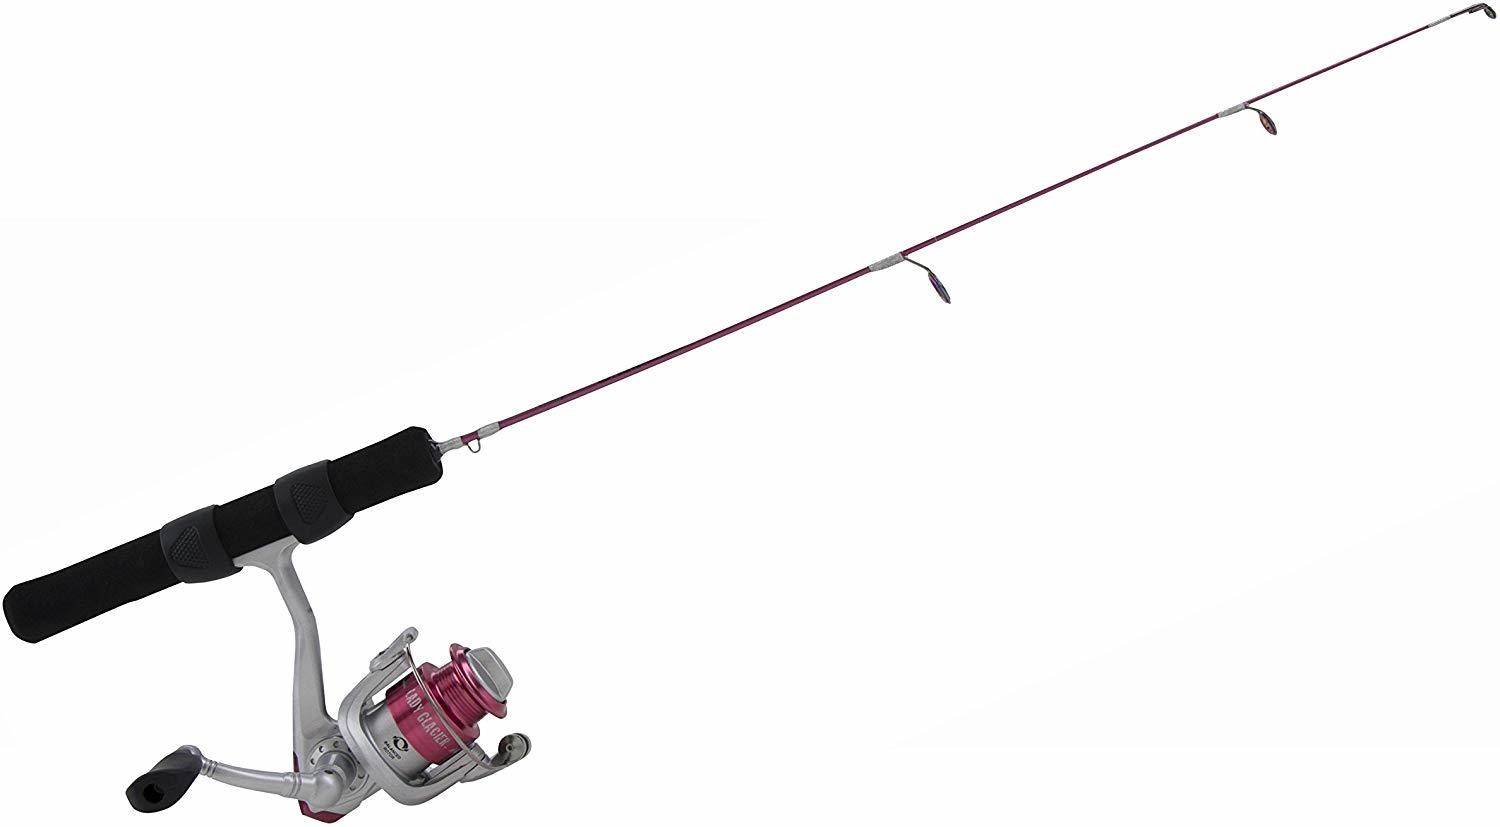 Shakespear glacier ice fishing rod and reel combo.